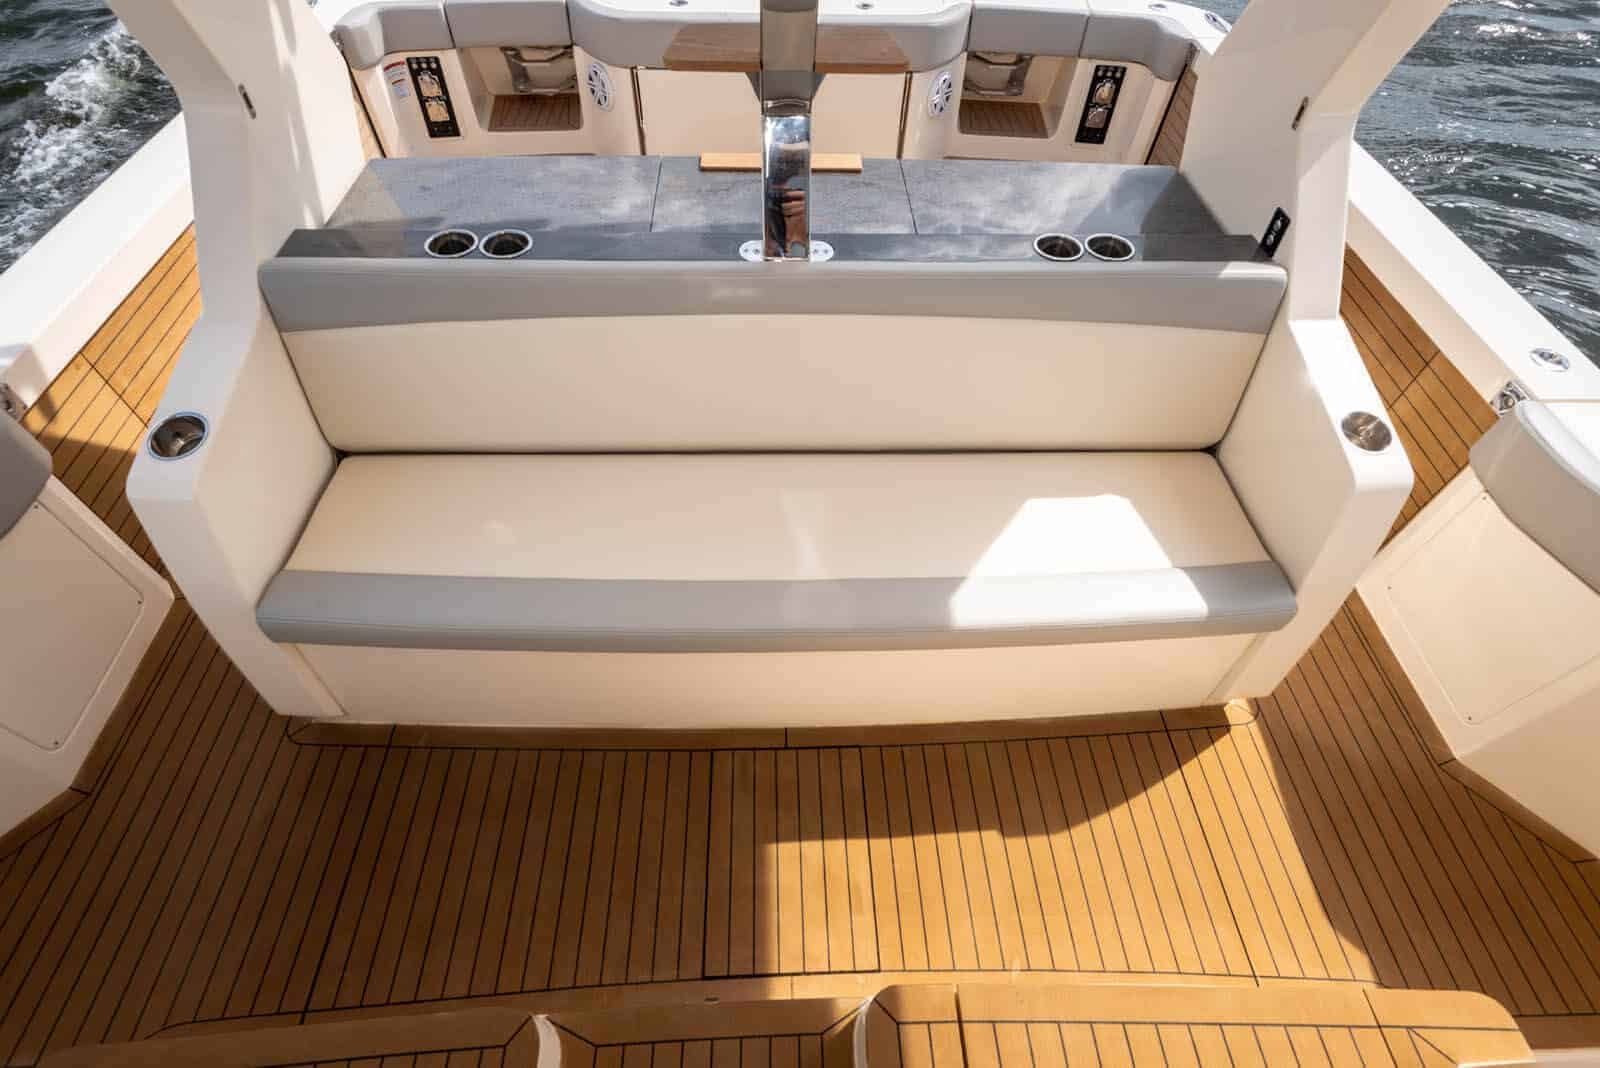 530LXF aft facing seat with rod storage underneath